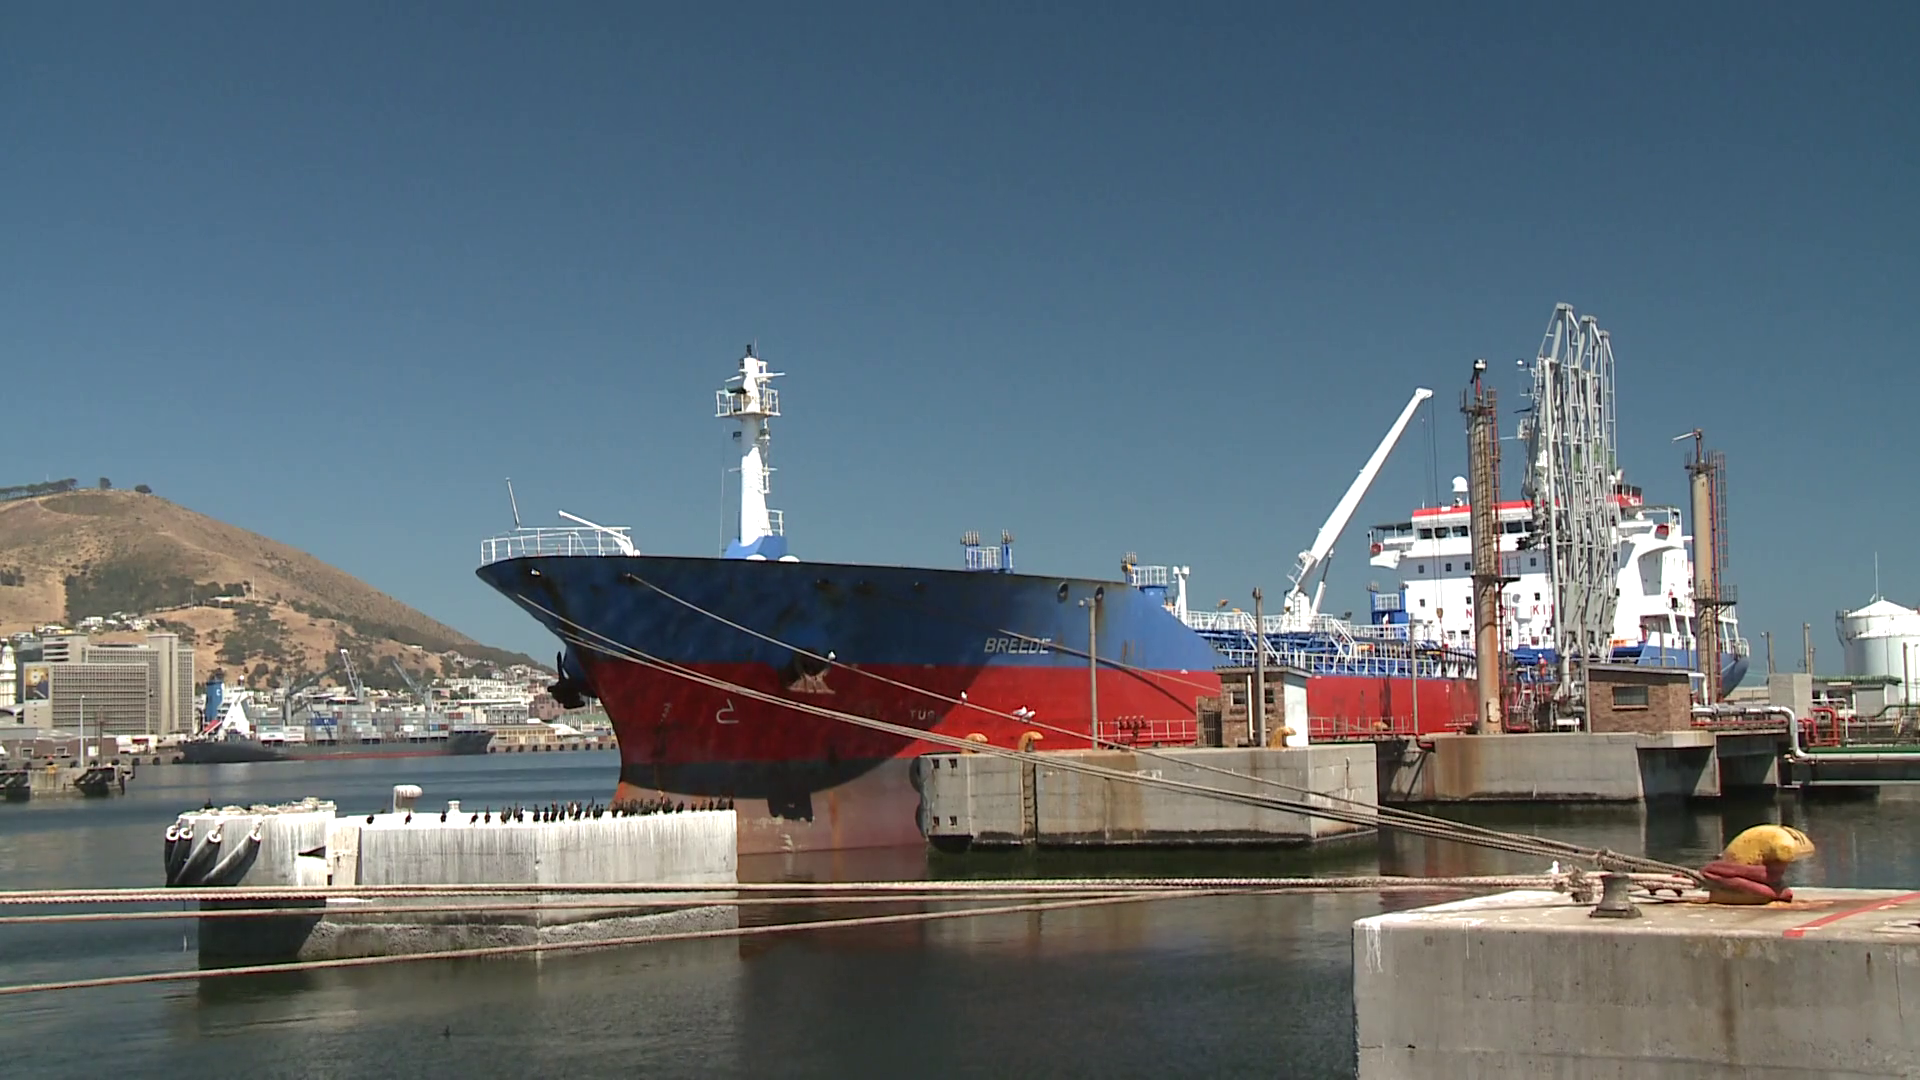 Breede Oil Tanker moored in the harbour at Cape Town harbour, South ...